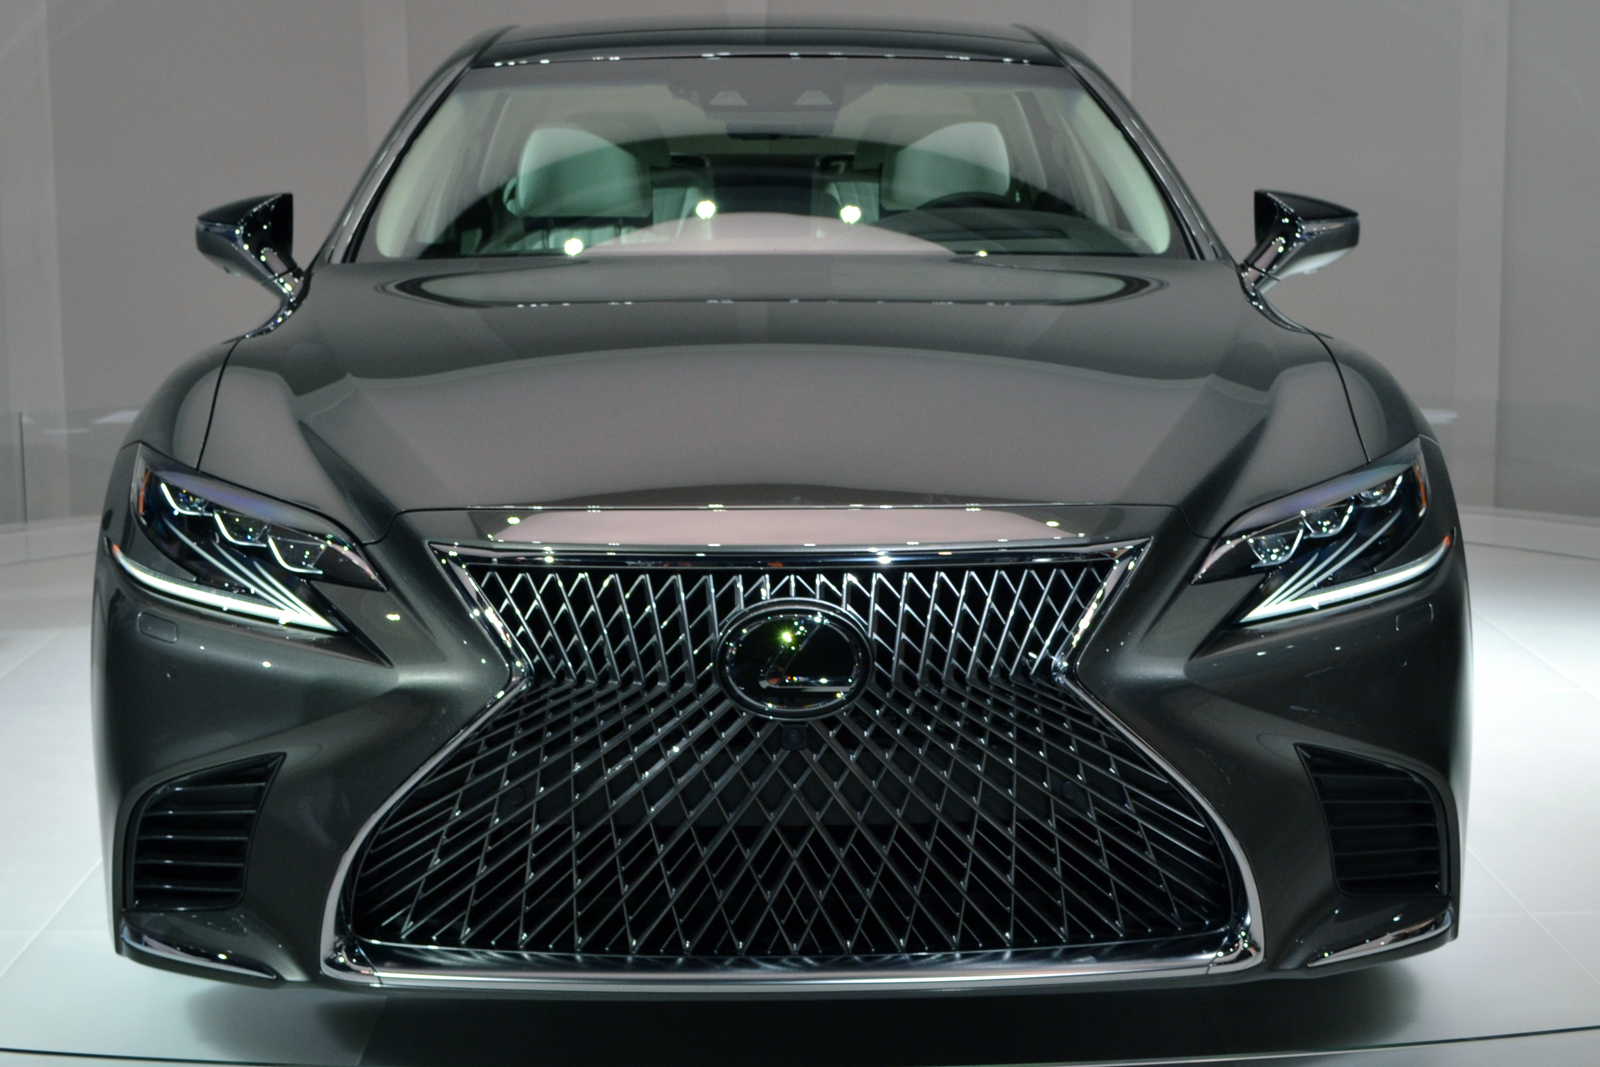 2018 lexus sedan. unique sedan view large  2018lexusls003 2018lexusls006 2018lexusls001 2018lexusls002  2018lexusls005 2018lexusls004 2018 lexus  with lexus sedan u